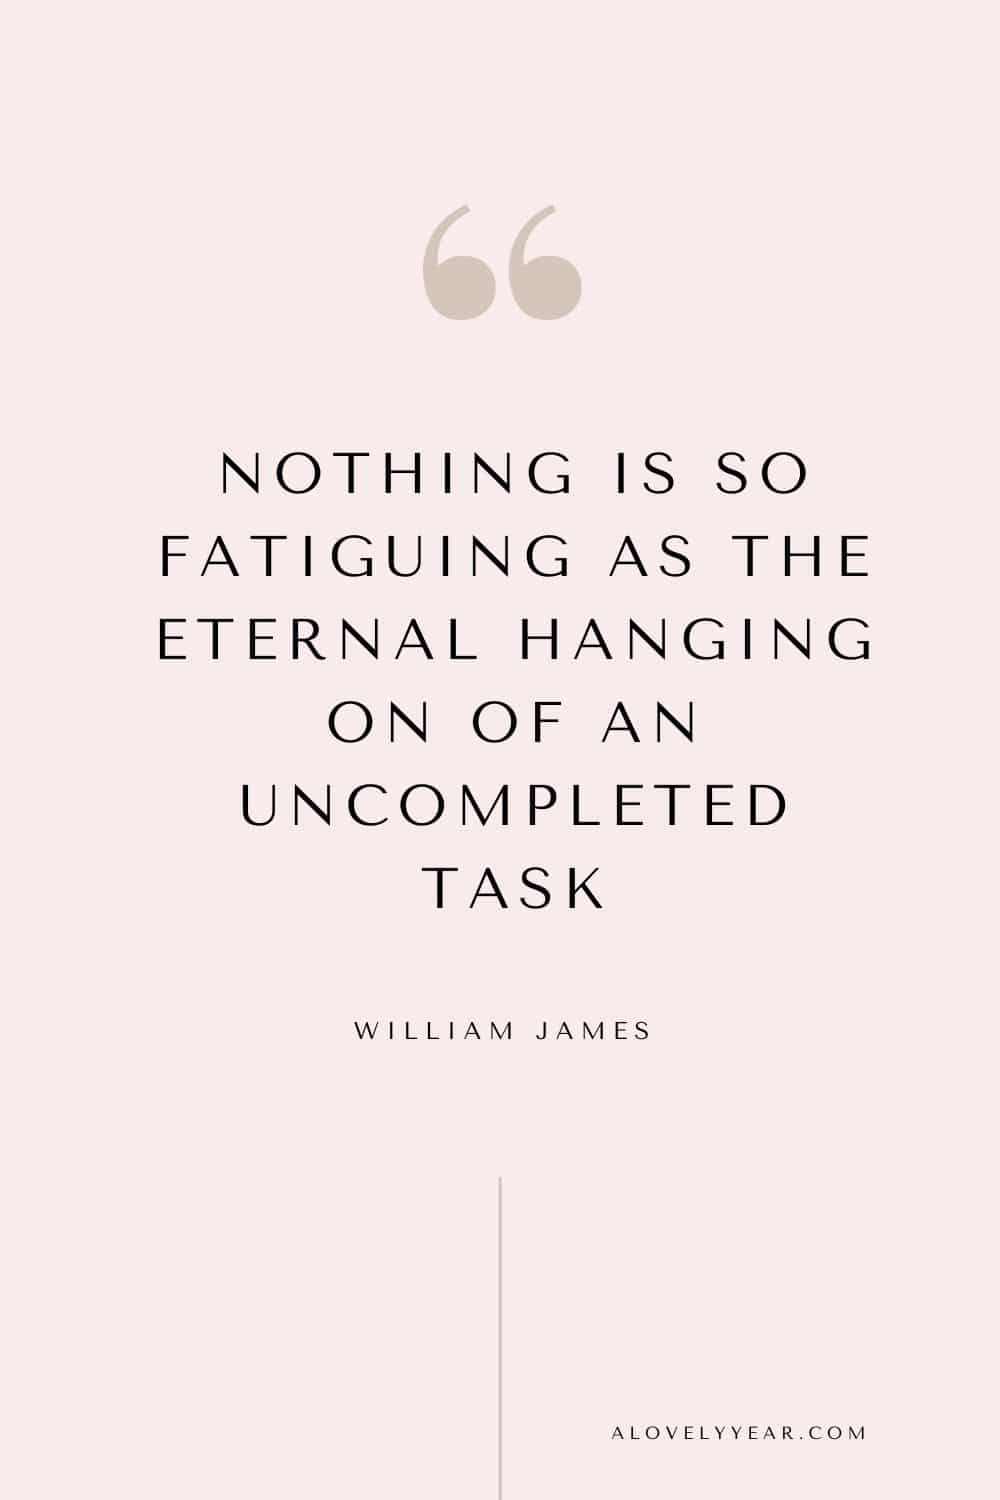 Get things done quote - Nothing is so fatiguing as the eternal hanging on of an uncompleted task. – William James